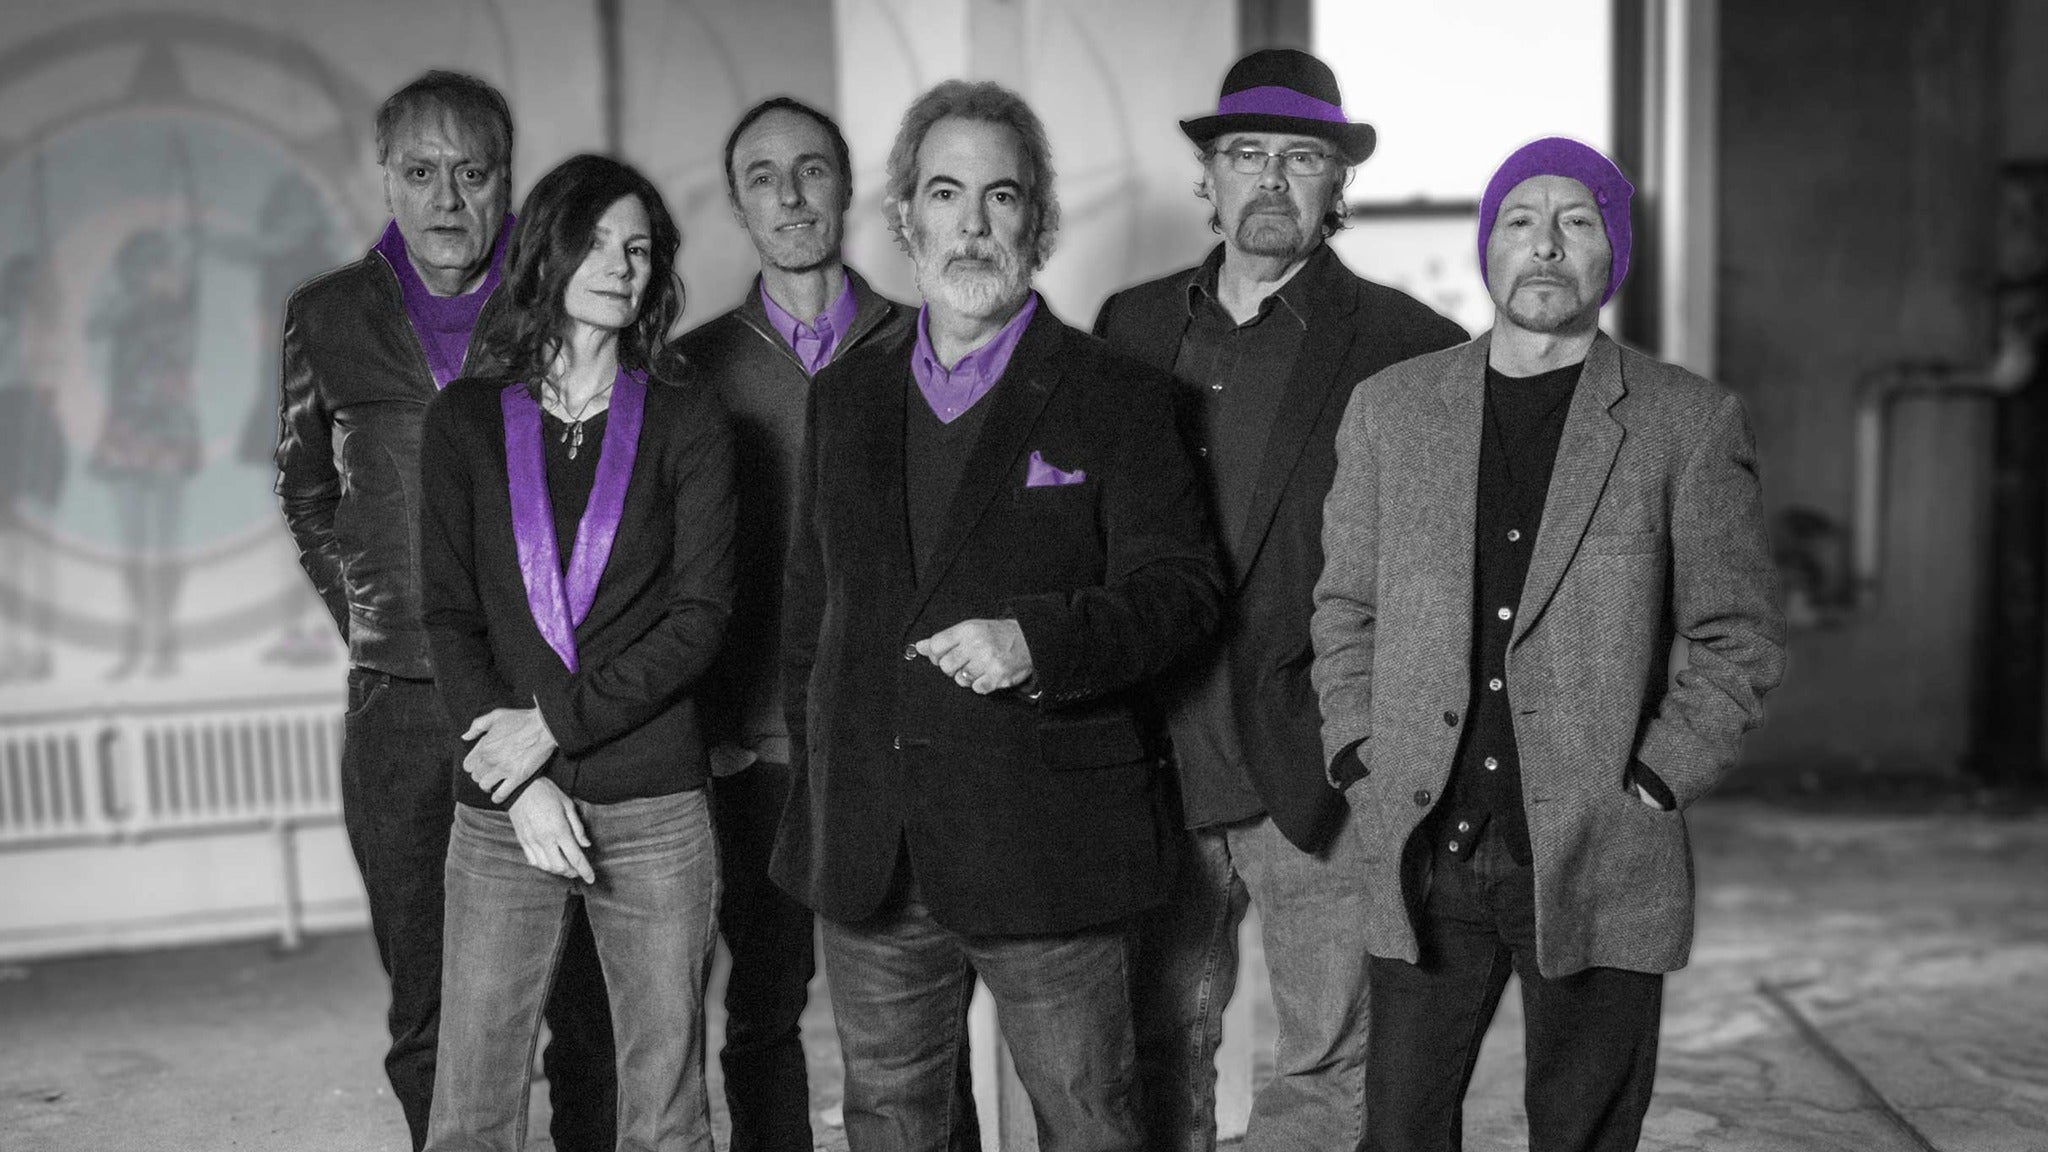 10000 Maniacs at Crest Theatre - Sacramento